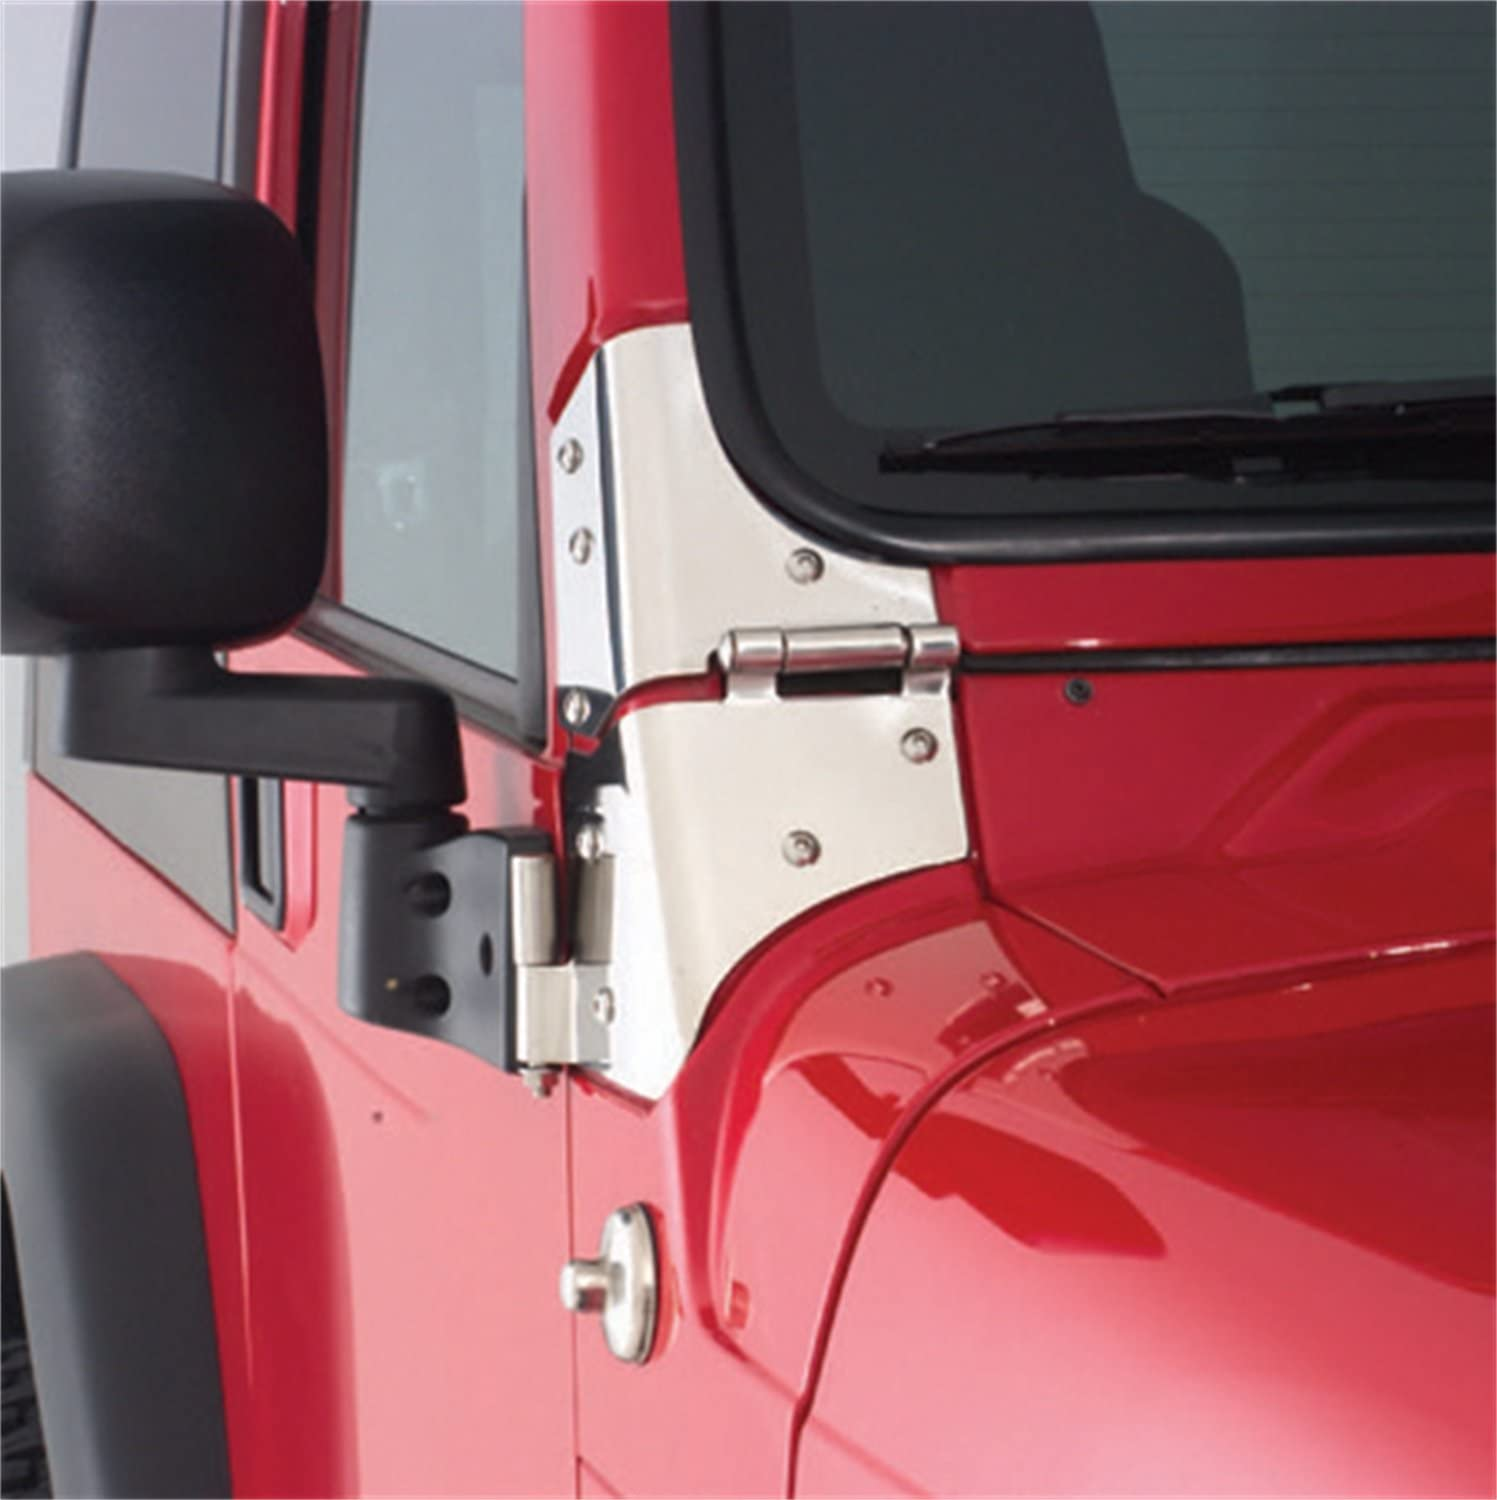 Smittybilt 8691 Door Mirror Relocation Bracket Fits 97-06 TJ Wrangler